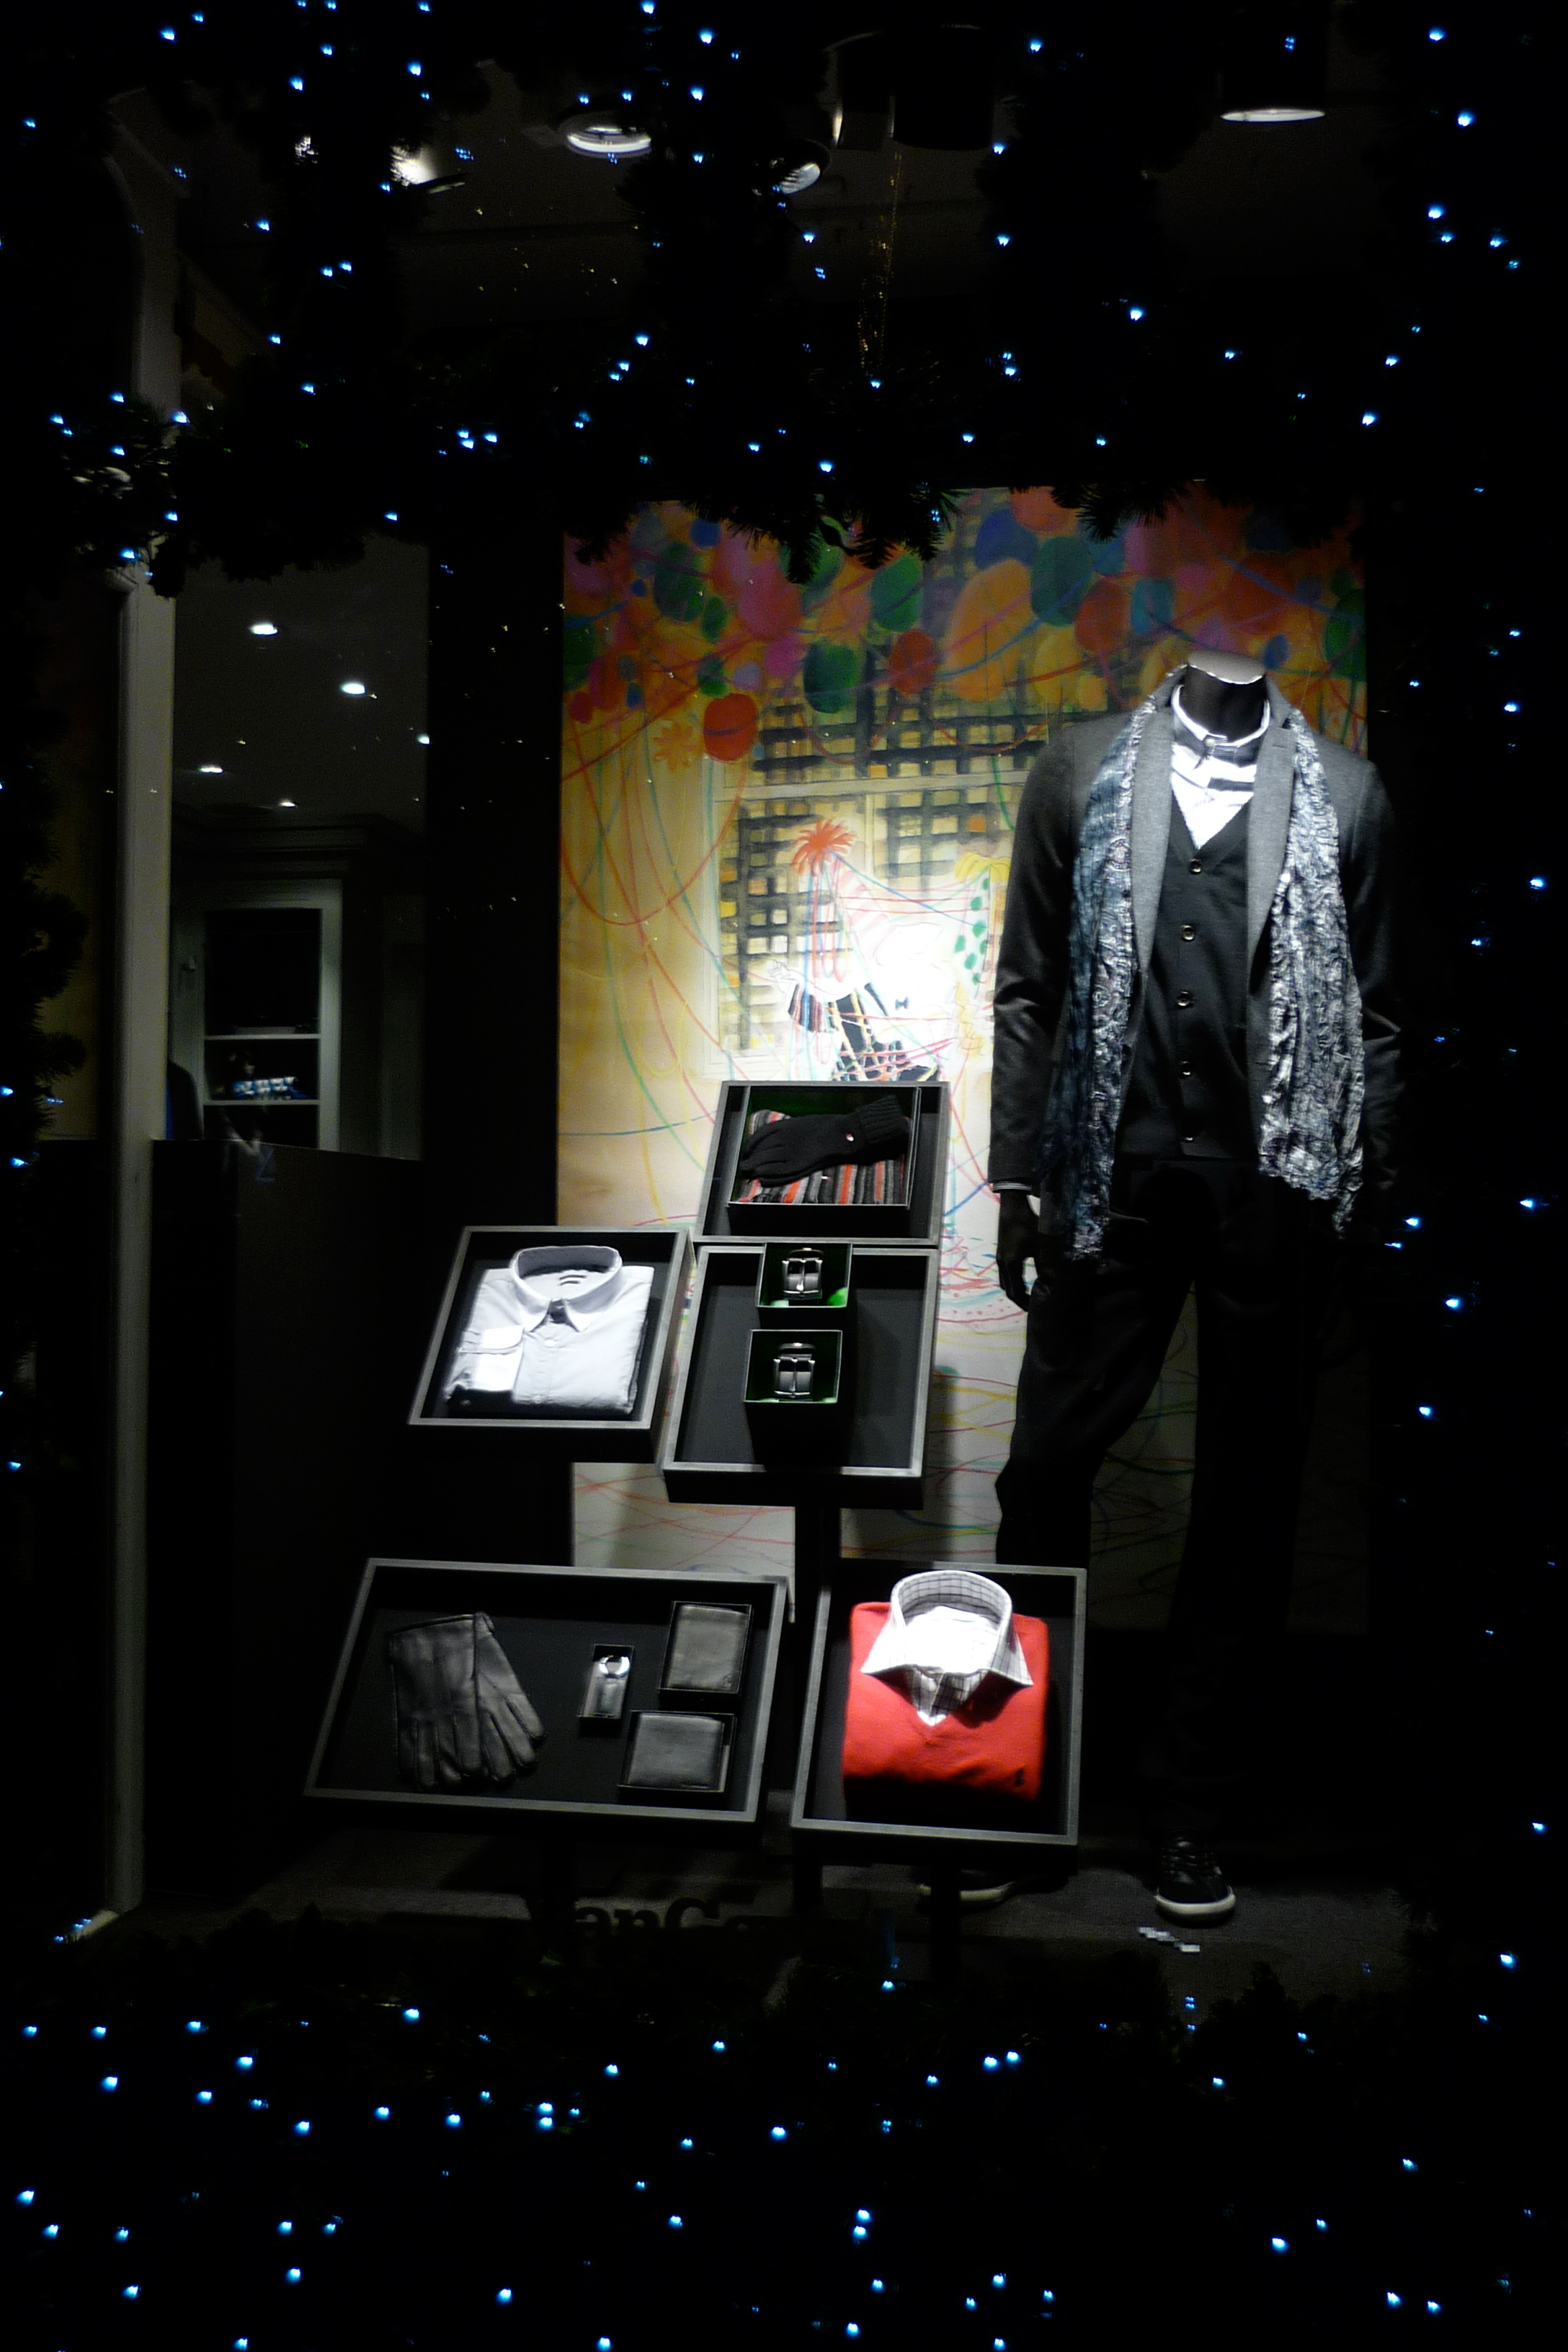 - New YearVan GestelwindowA festive window was made for men's boutique Van Gestel. Lots of lights and custom made displays with a vintage newyear poster as a backdrop, set the scene.This made a classic newyear feel come to life.